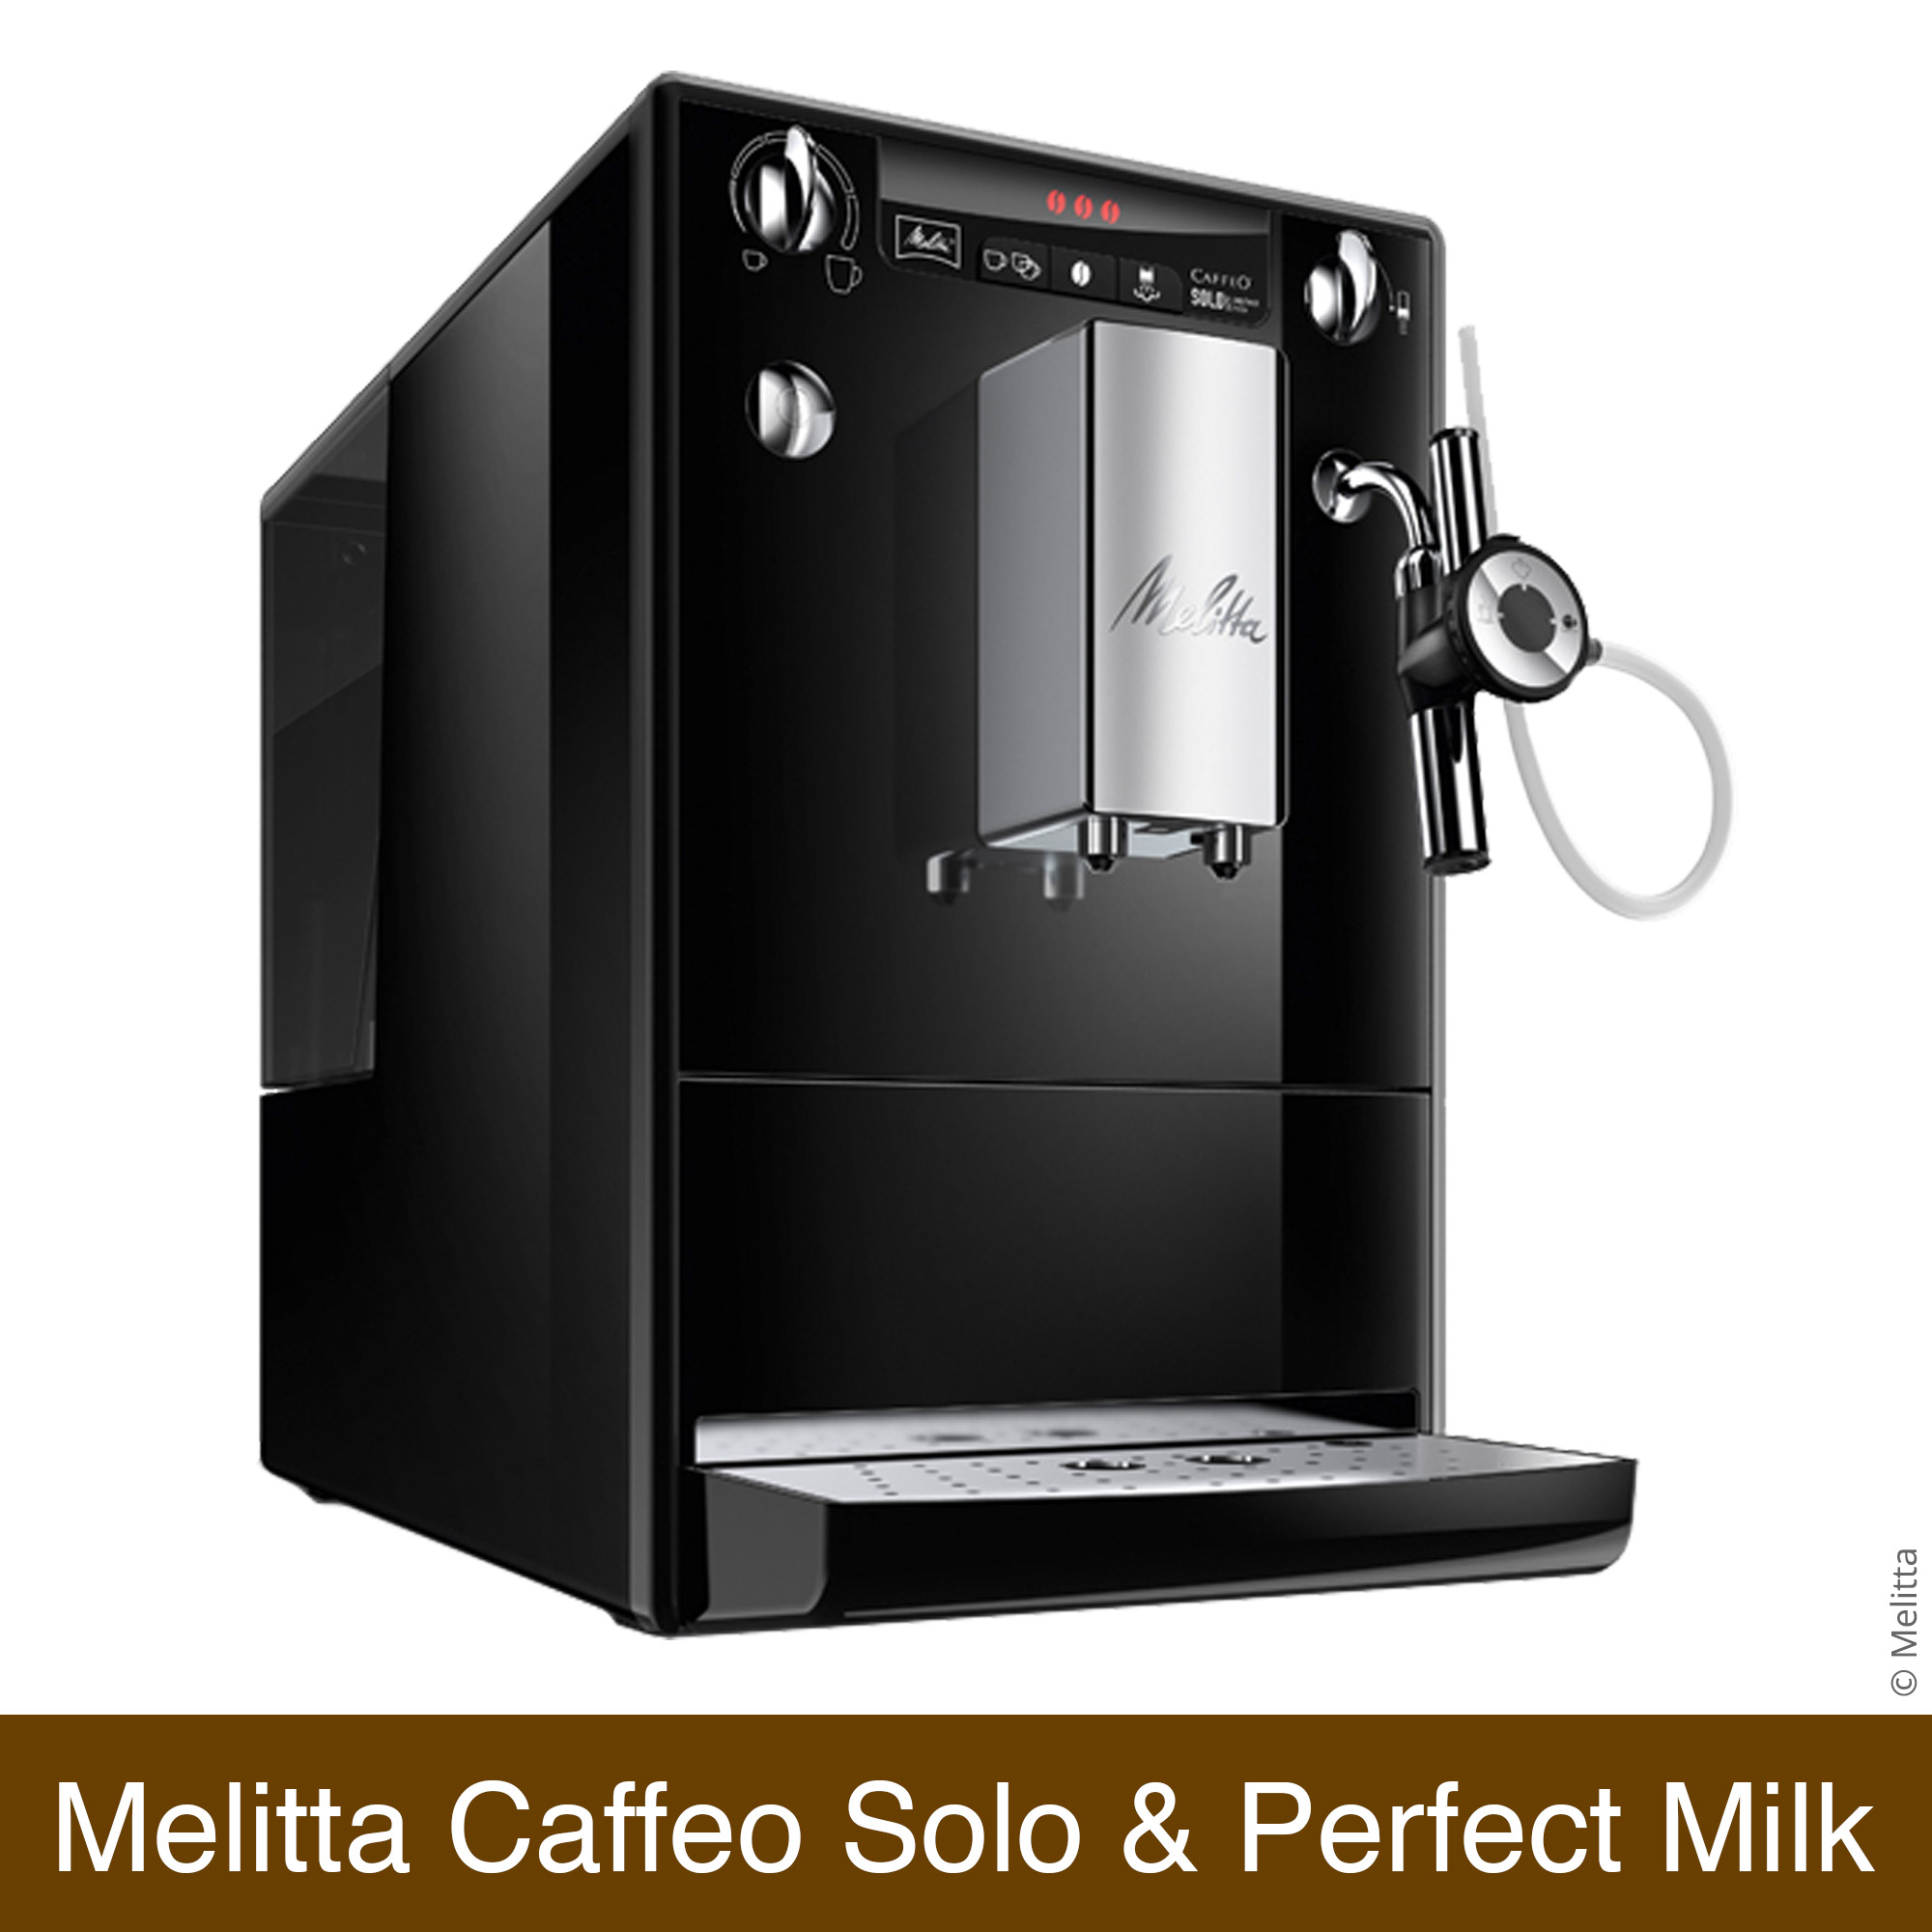 melitta caffeo solo und perfect milk e 957 101 vergleich kaffeevollautomaten. Black Bedroom Furniture Sets. Home Design Ideas